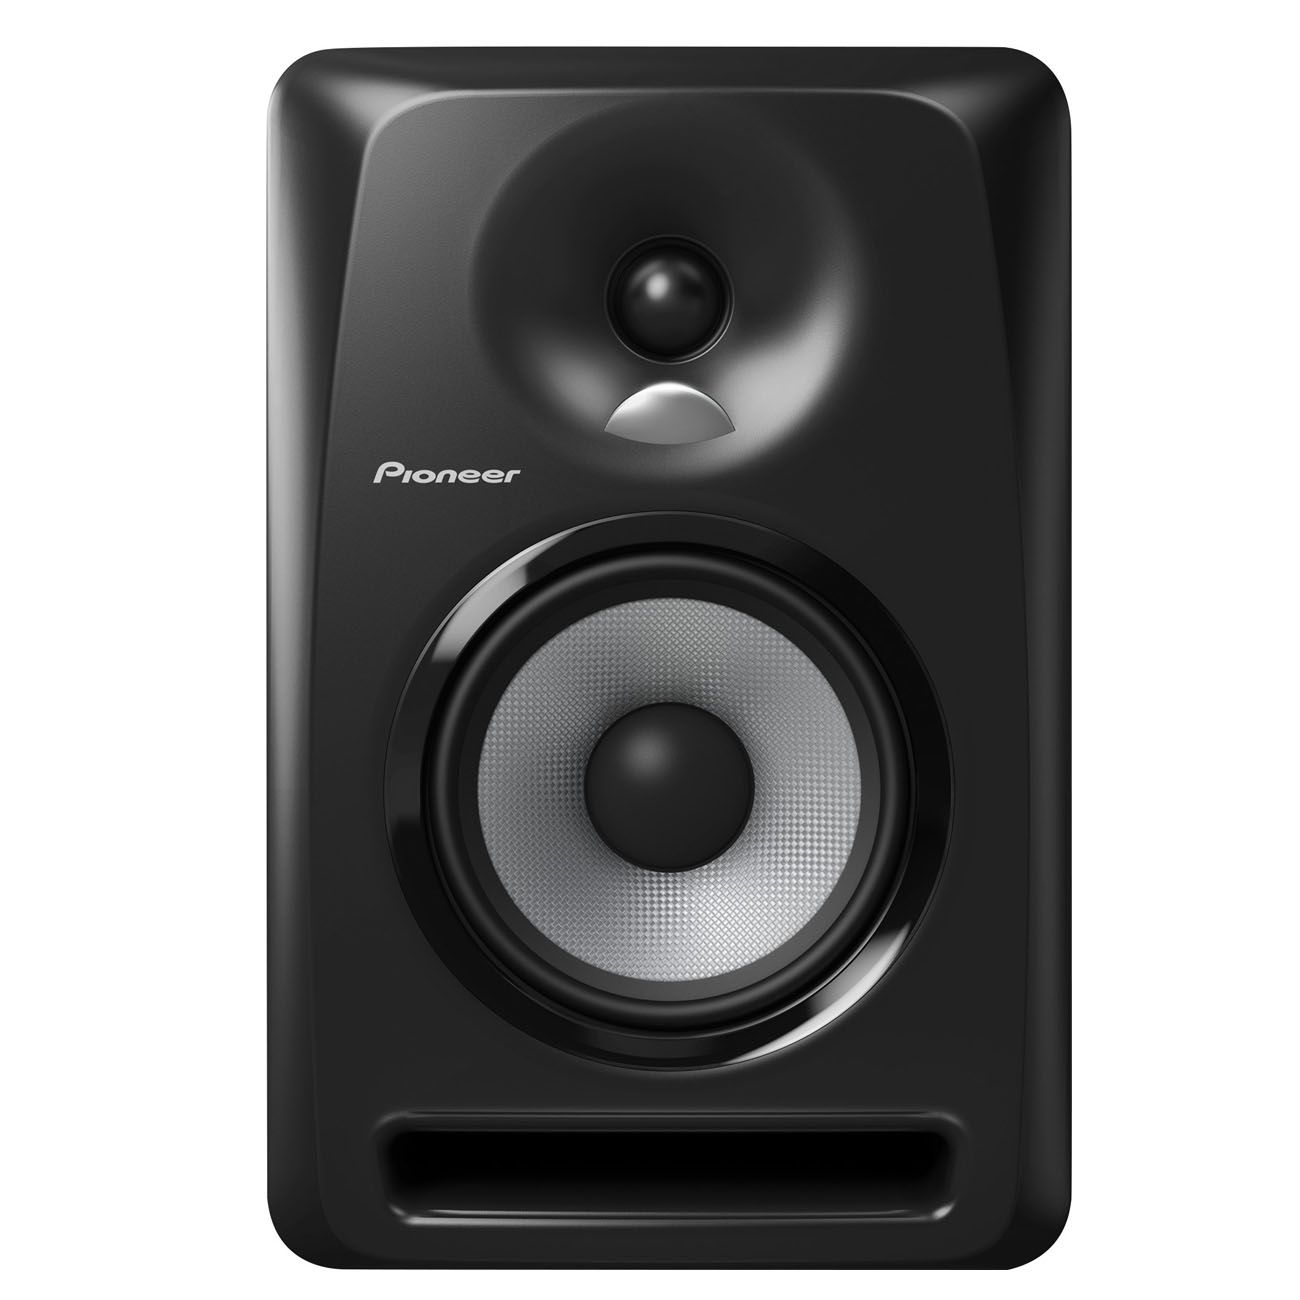 Monitor De Referência Pioneer S-dj50x